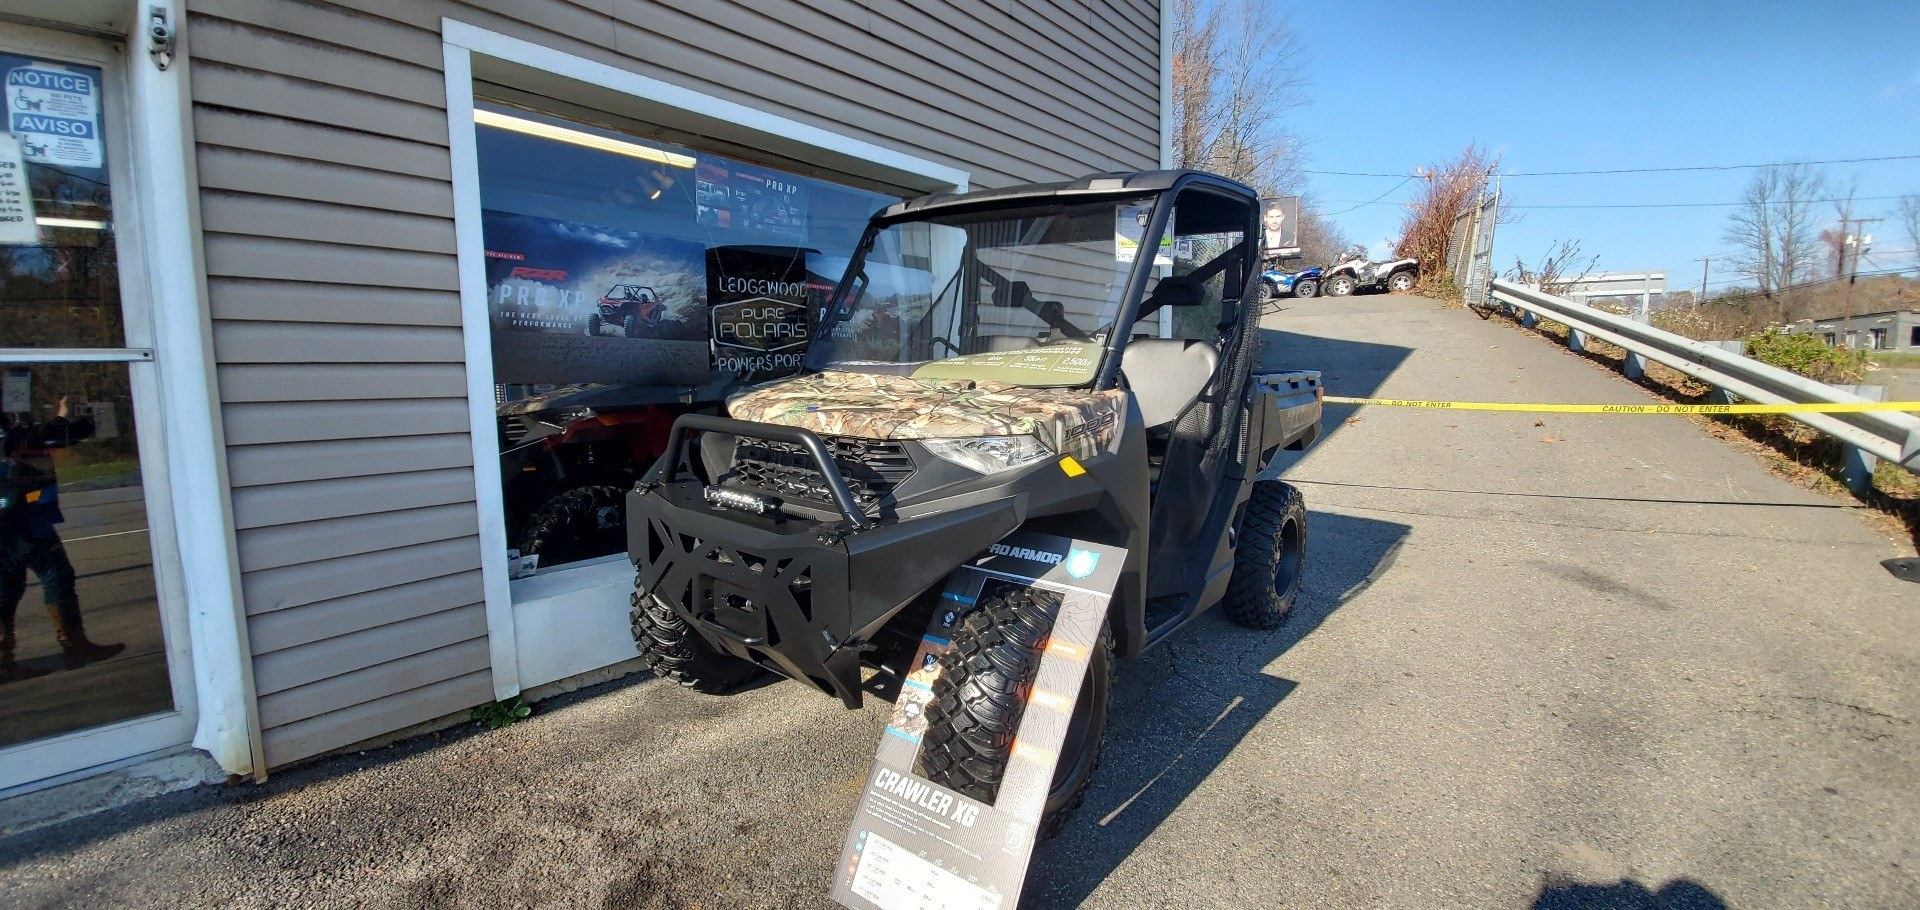 2020 Polaris Ranger 1000 EPS in Ledgewood, New Jersey - Photo 12